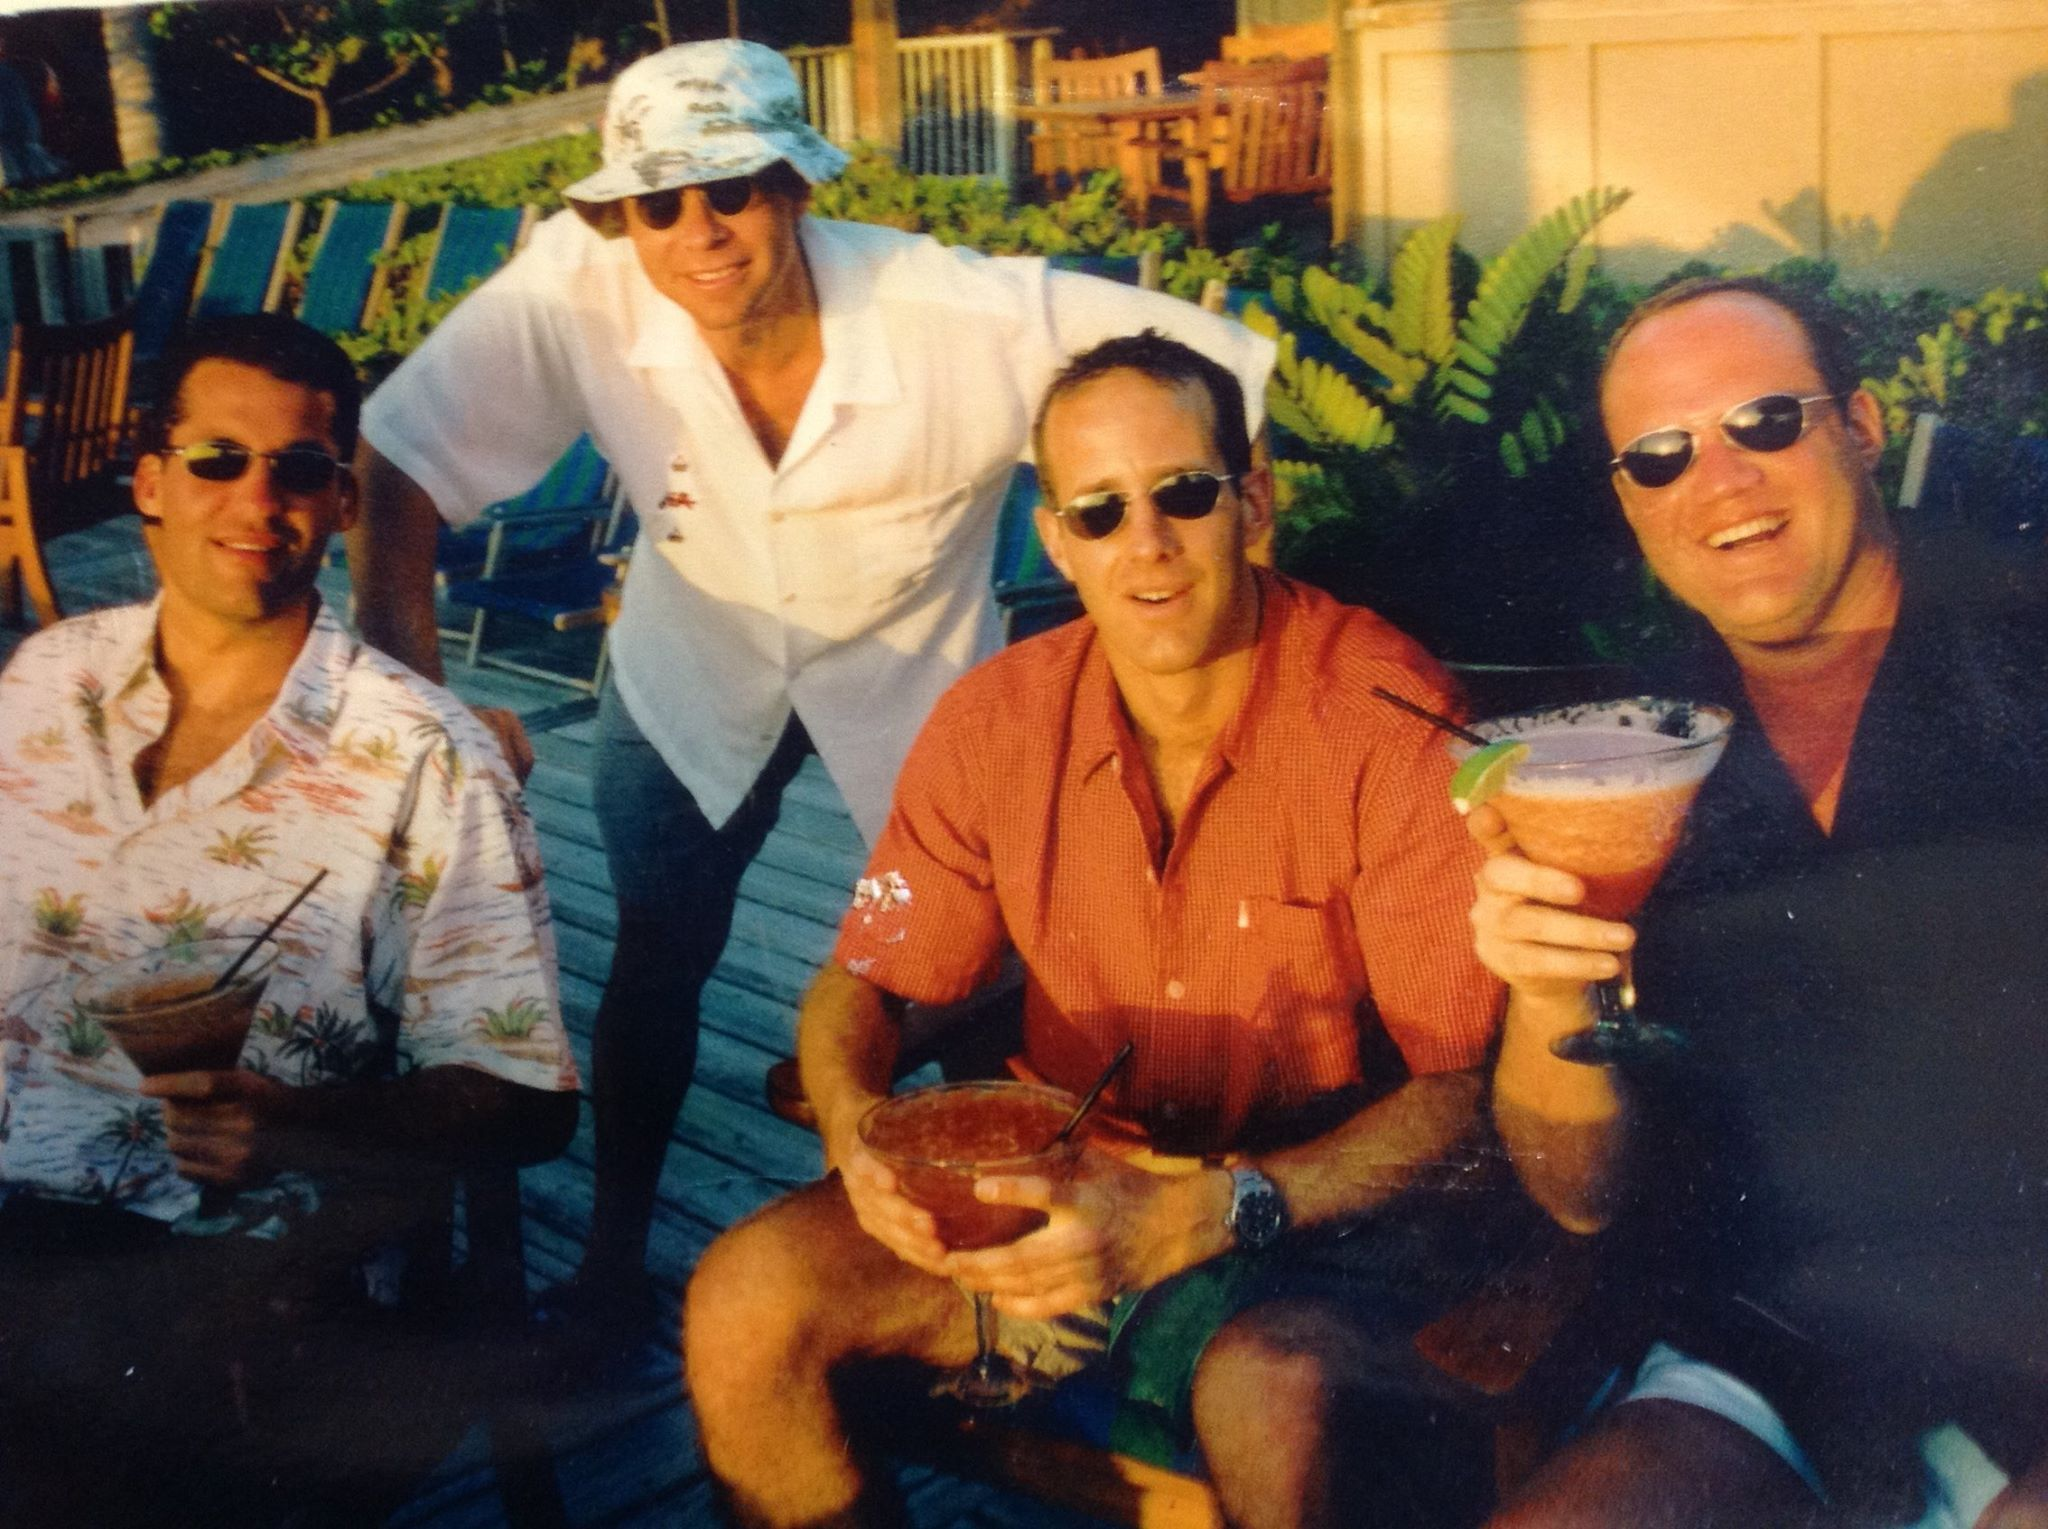 Scott Stuber, Richard Lovett, Jason Sloane and Brian Medavoy